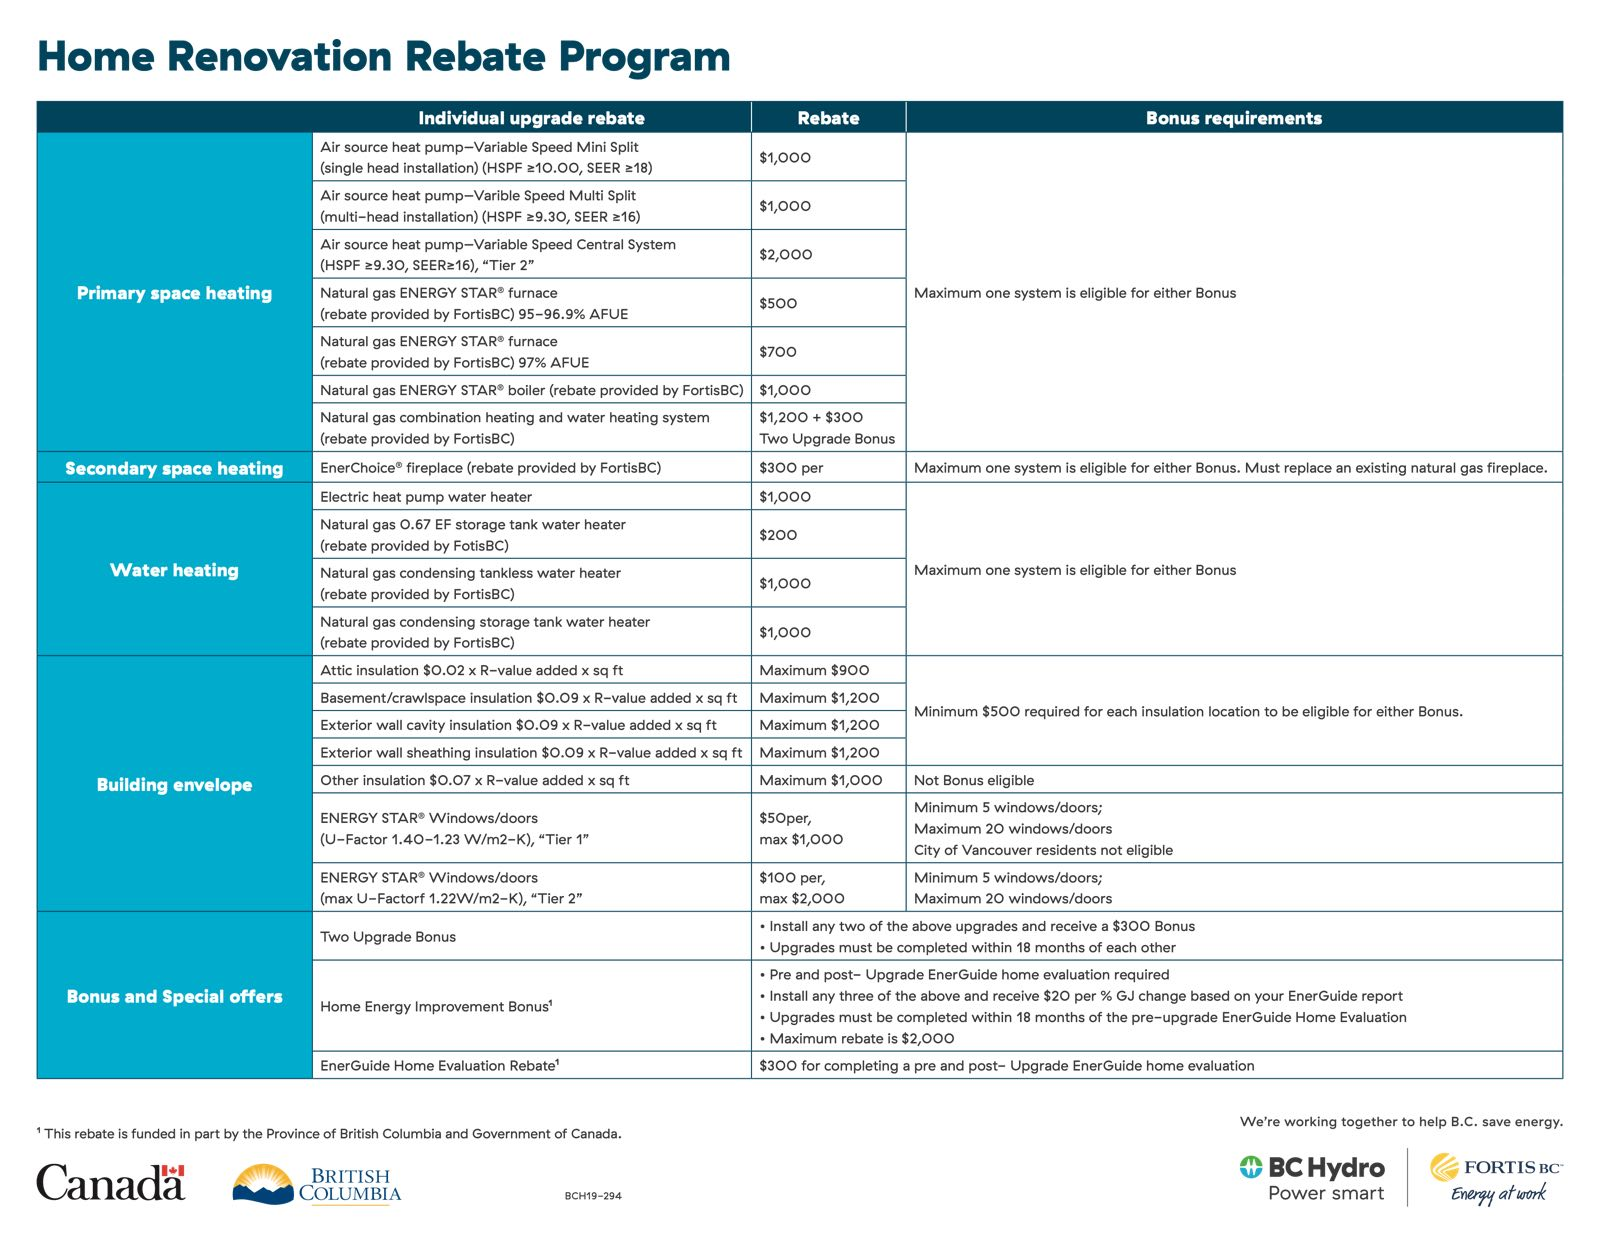 Home-Renovation-Rebate-Program